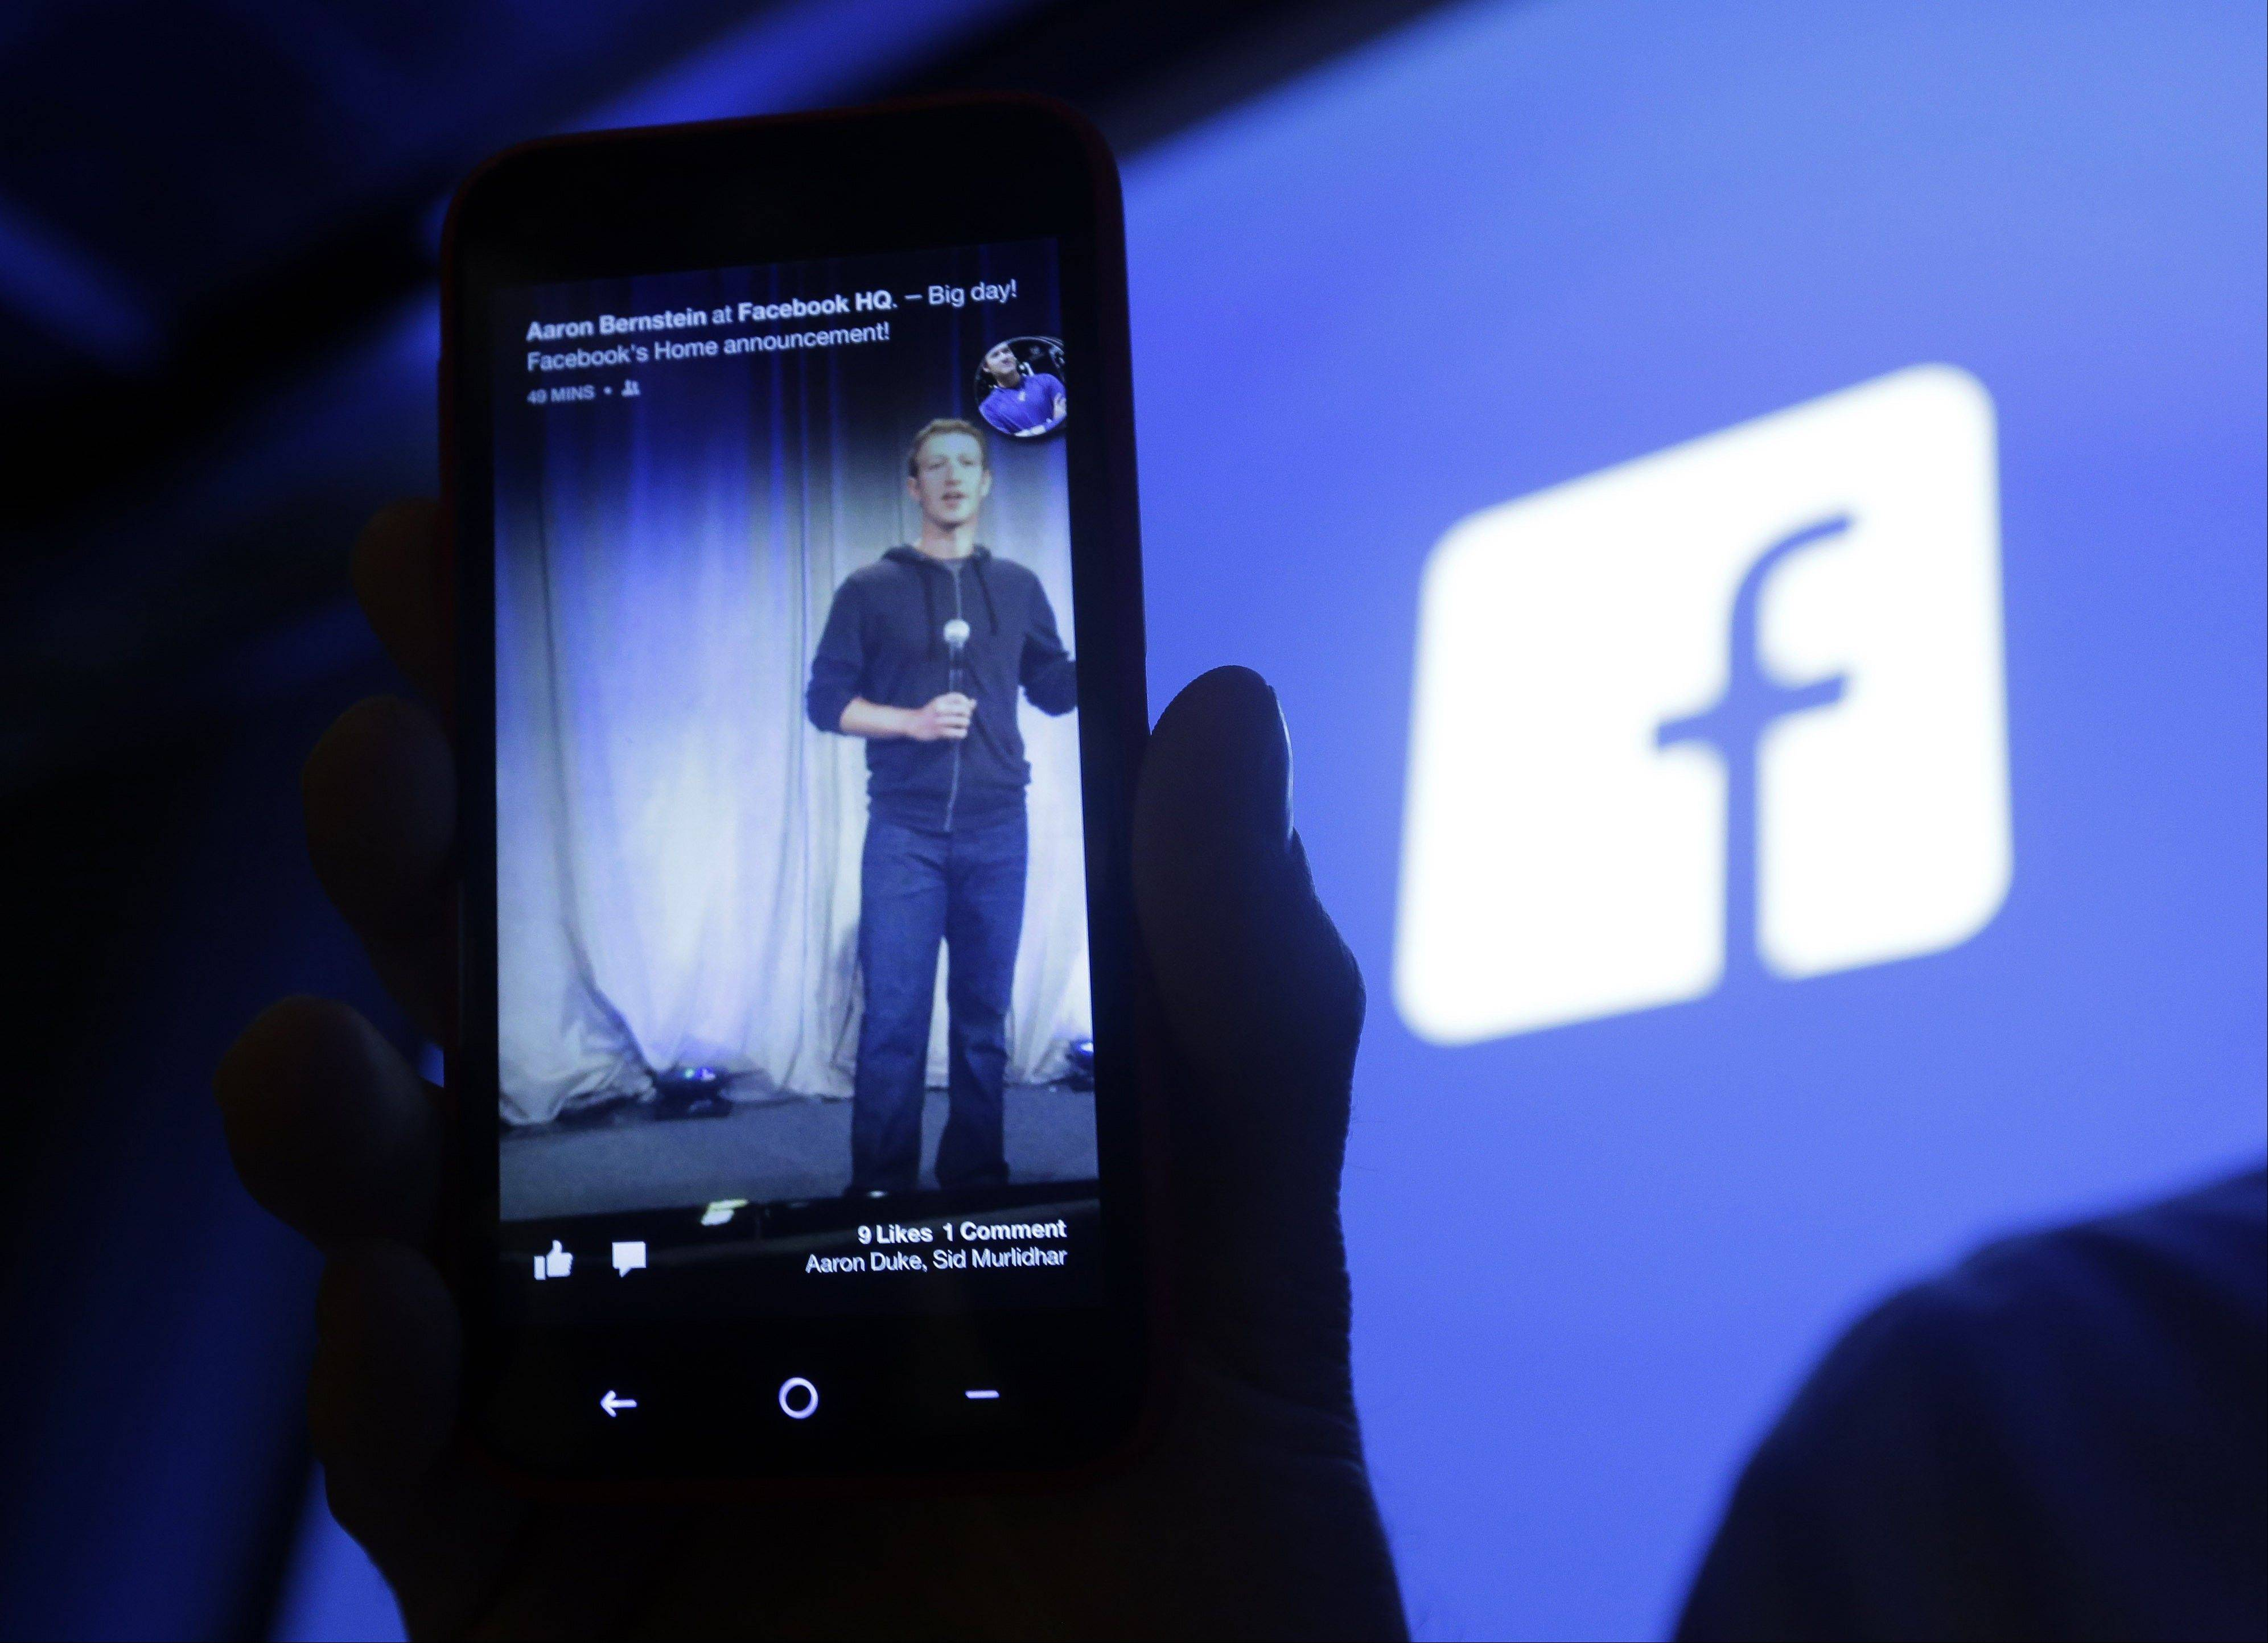 Facebook's net income and revenue grew in the first quarter of 2013, helped by an increase in mobile ad revenue, a figure that some skeptical investors have been watching closely. Facebook Inc. said Wednesday that its net income was $219 million, or 9 cents per share, in the January-March period.